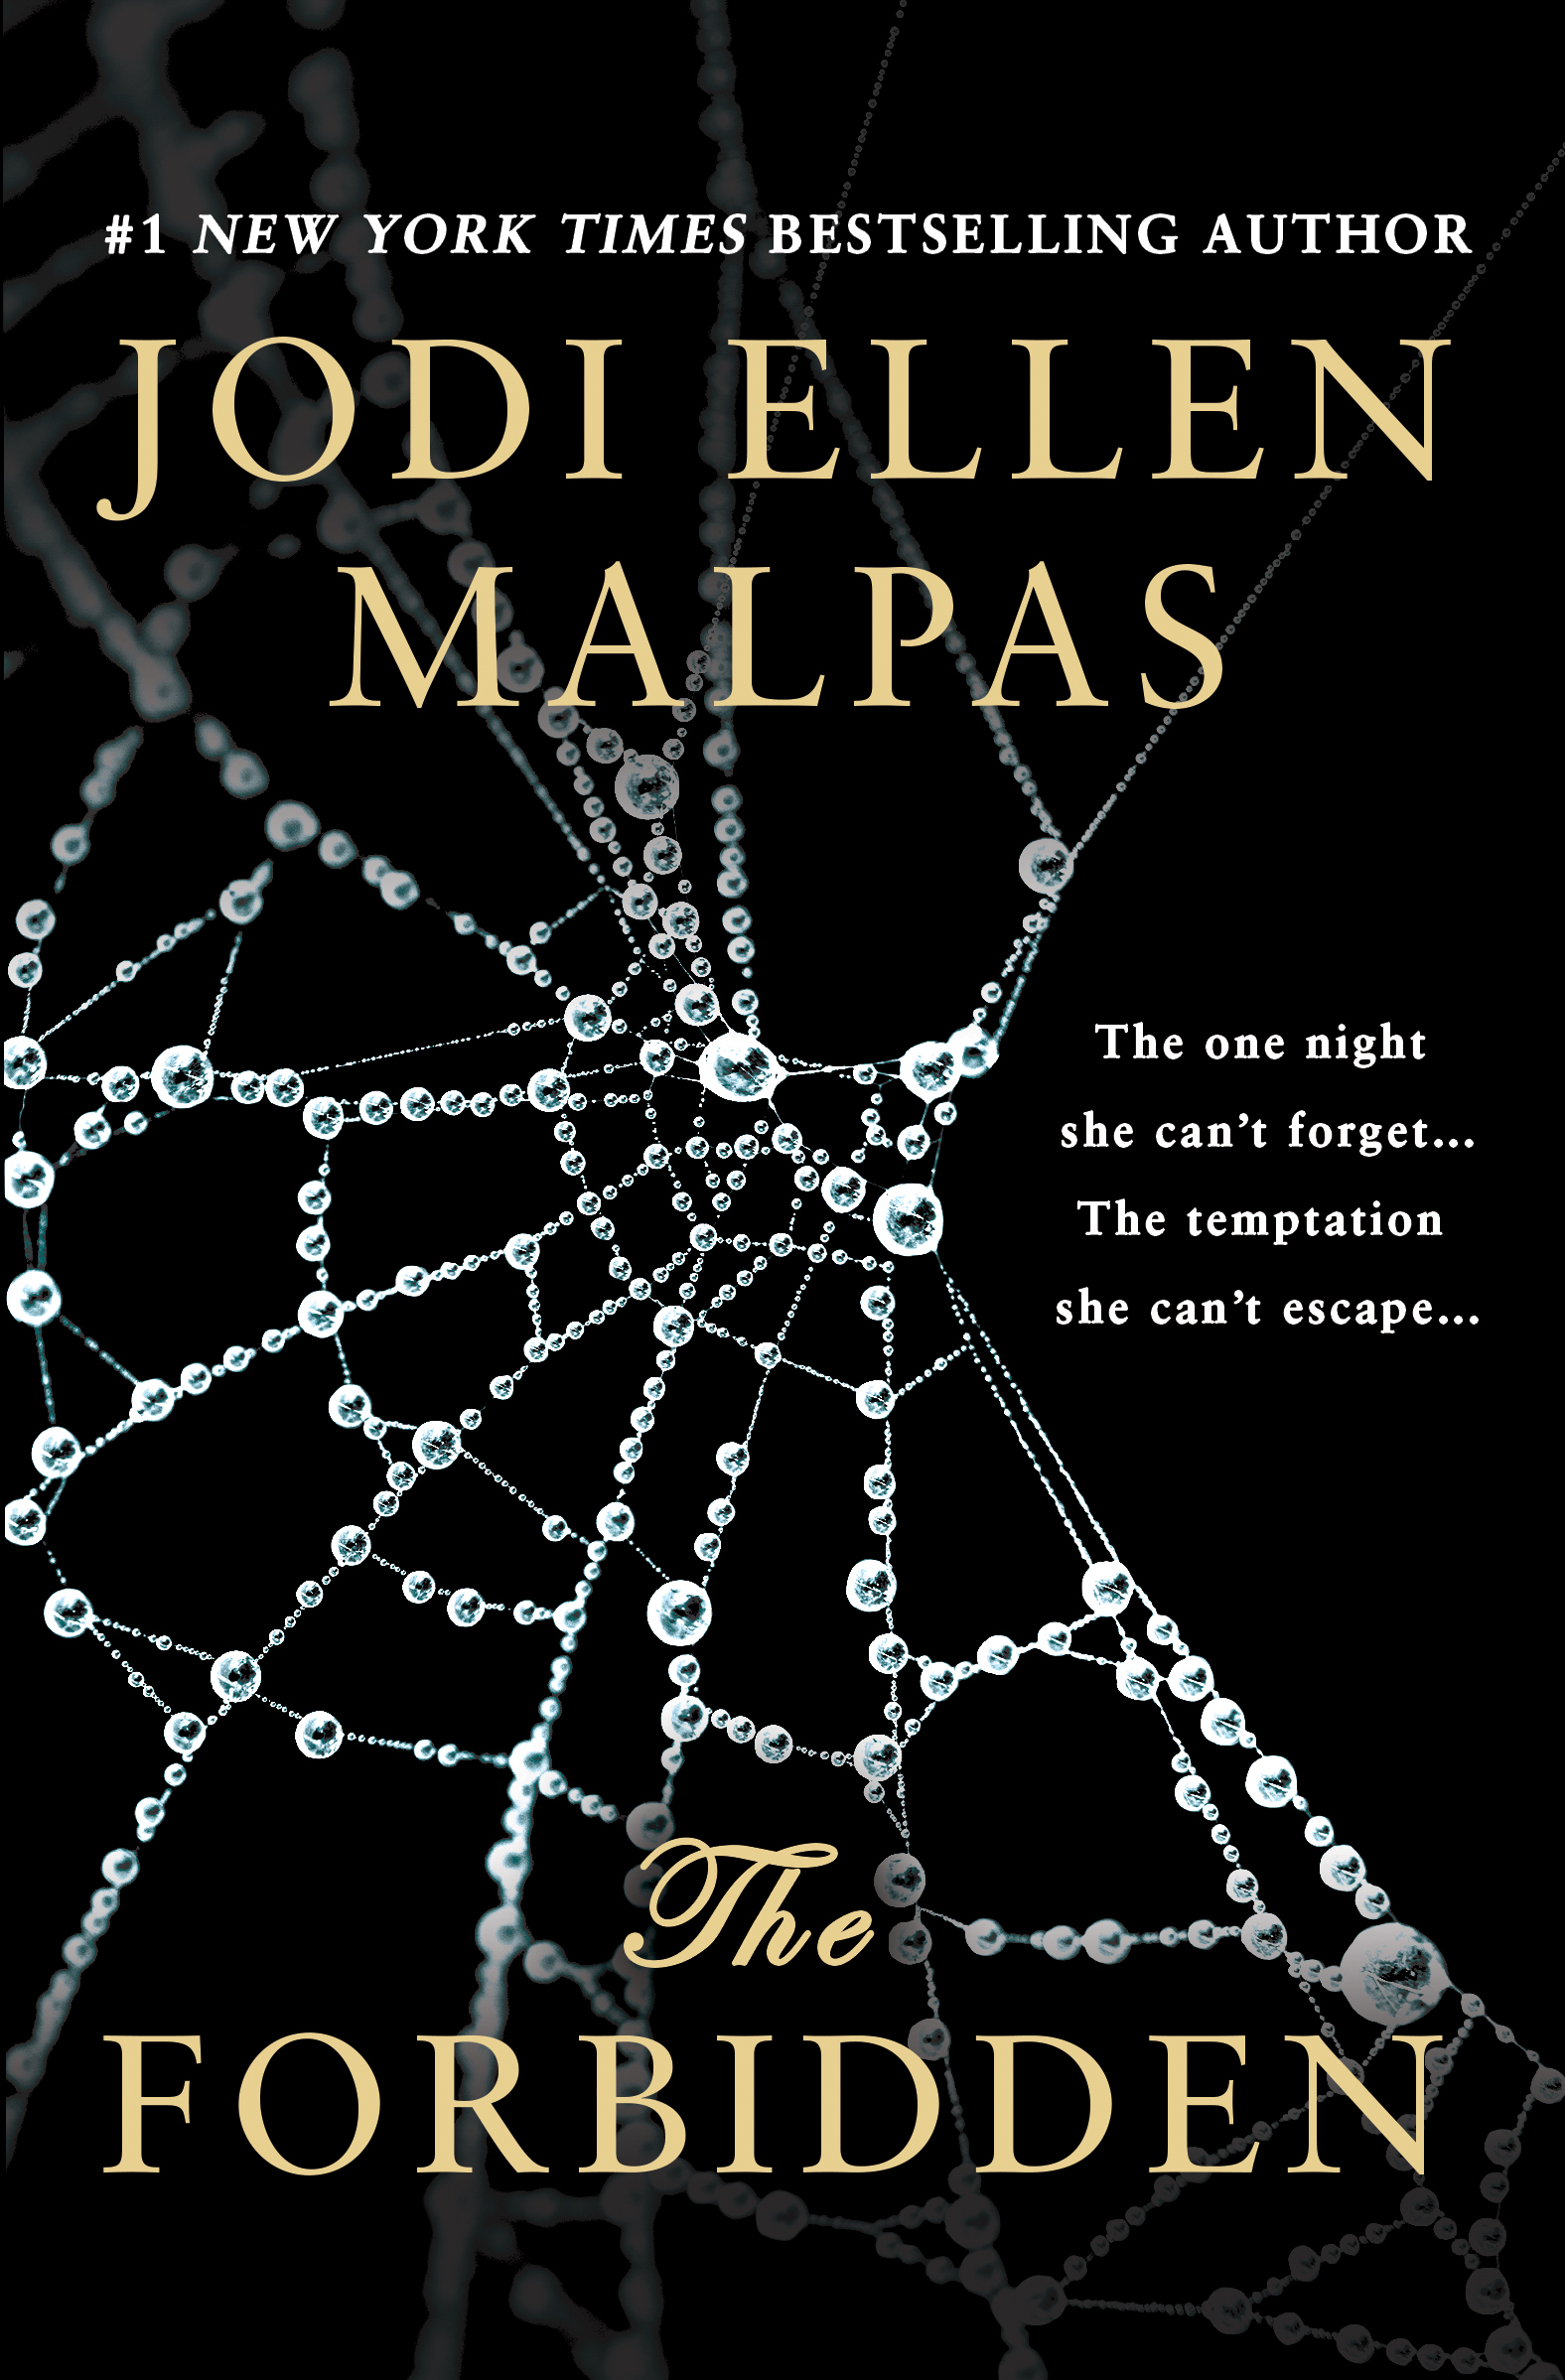 Blog Tour & Giveaway: The Forbidden by Jodi Ellen Malpas